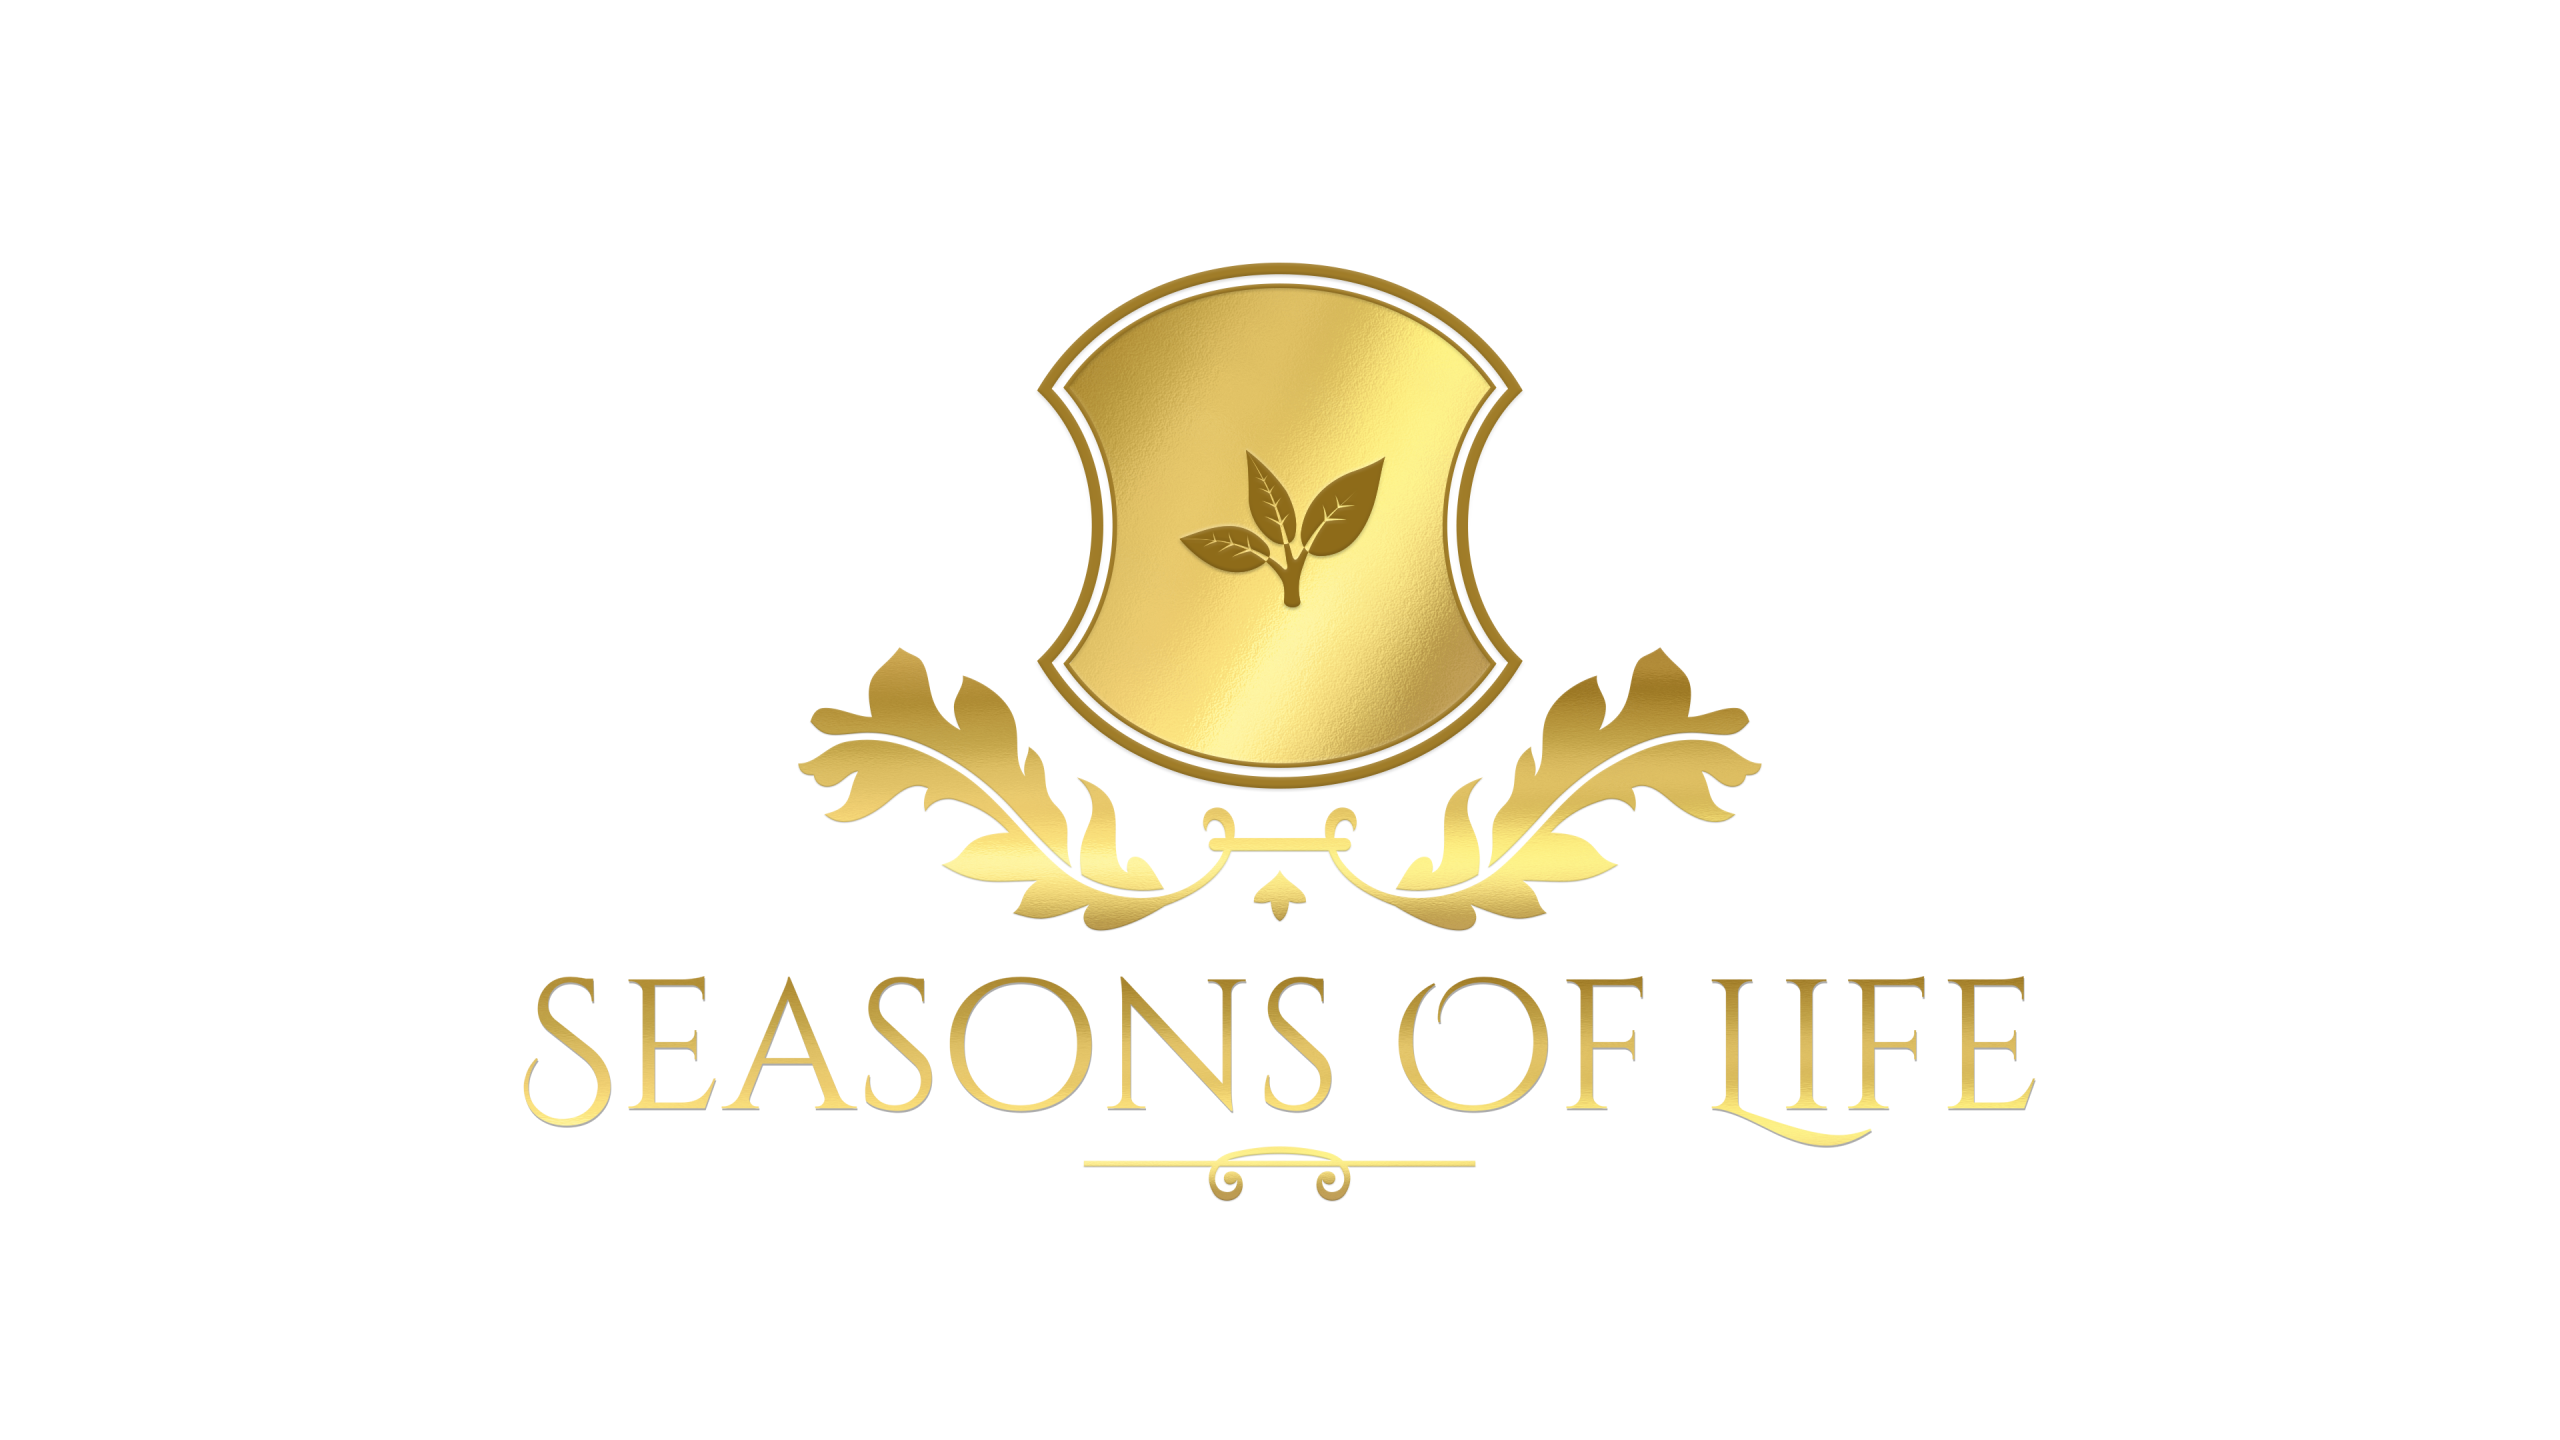 About Seasons Of Life